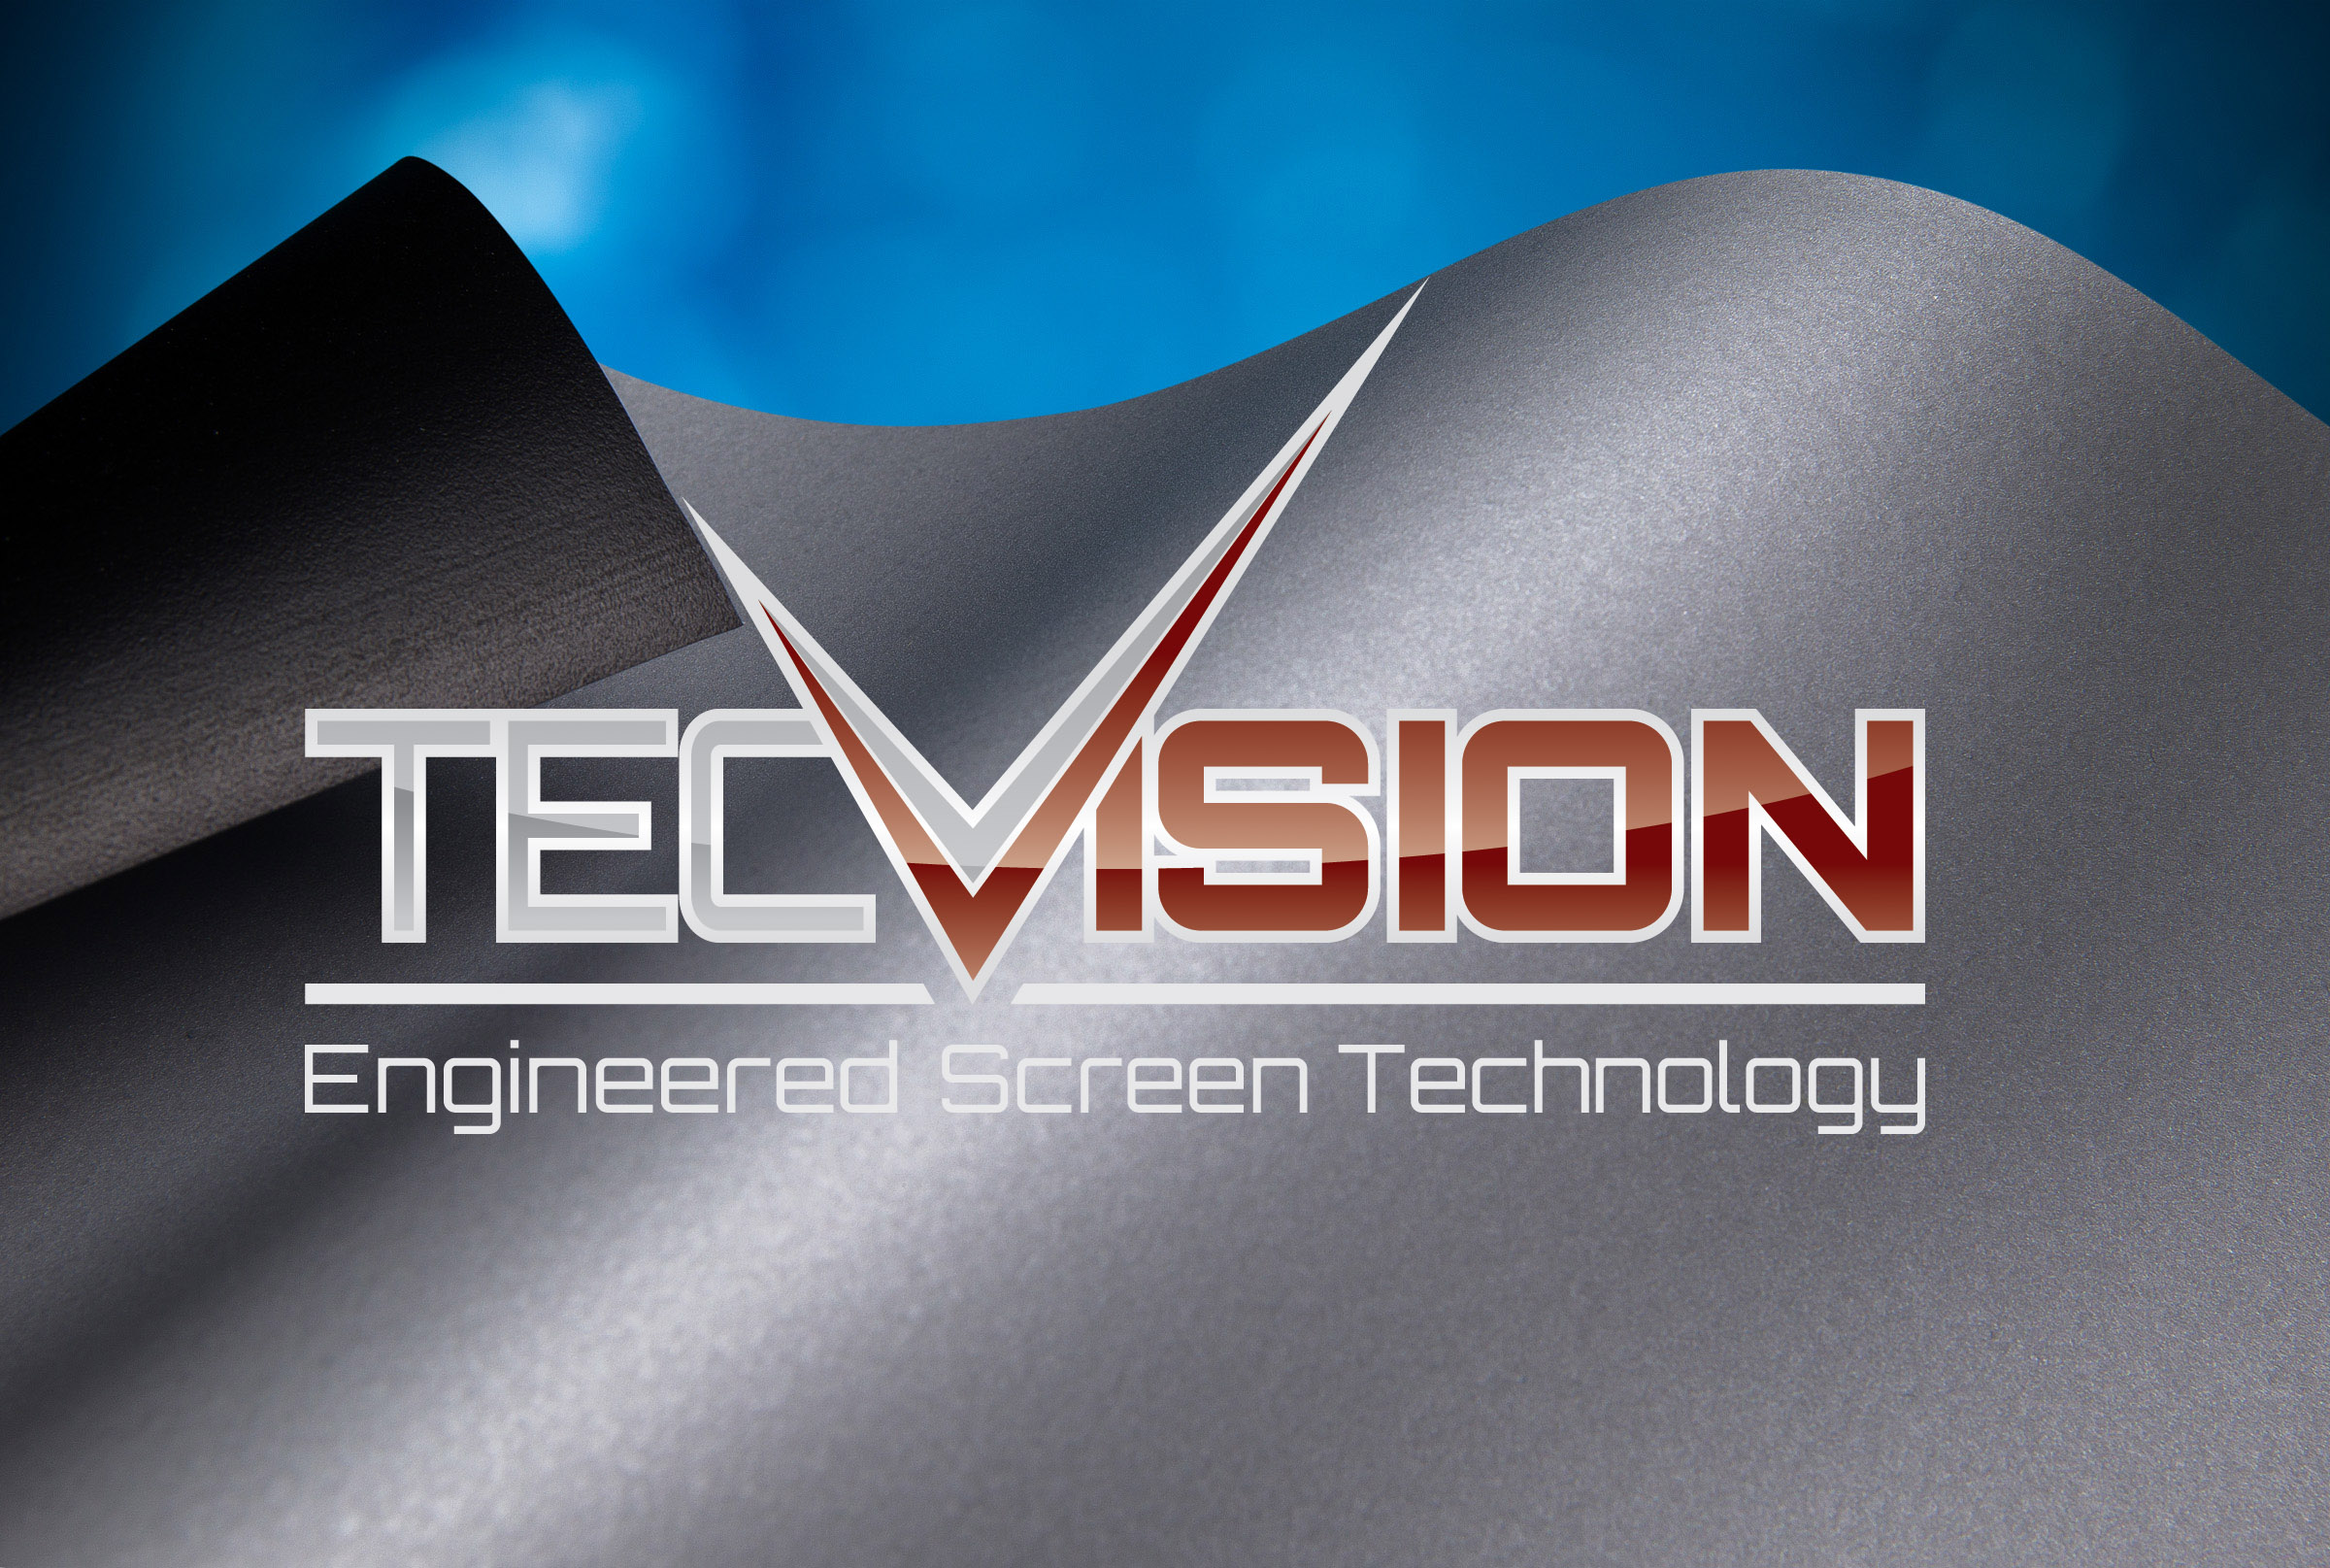 Draper Introduces TecVision Engineered Screen Technology